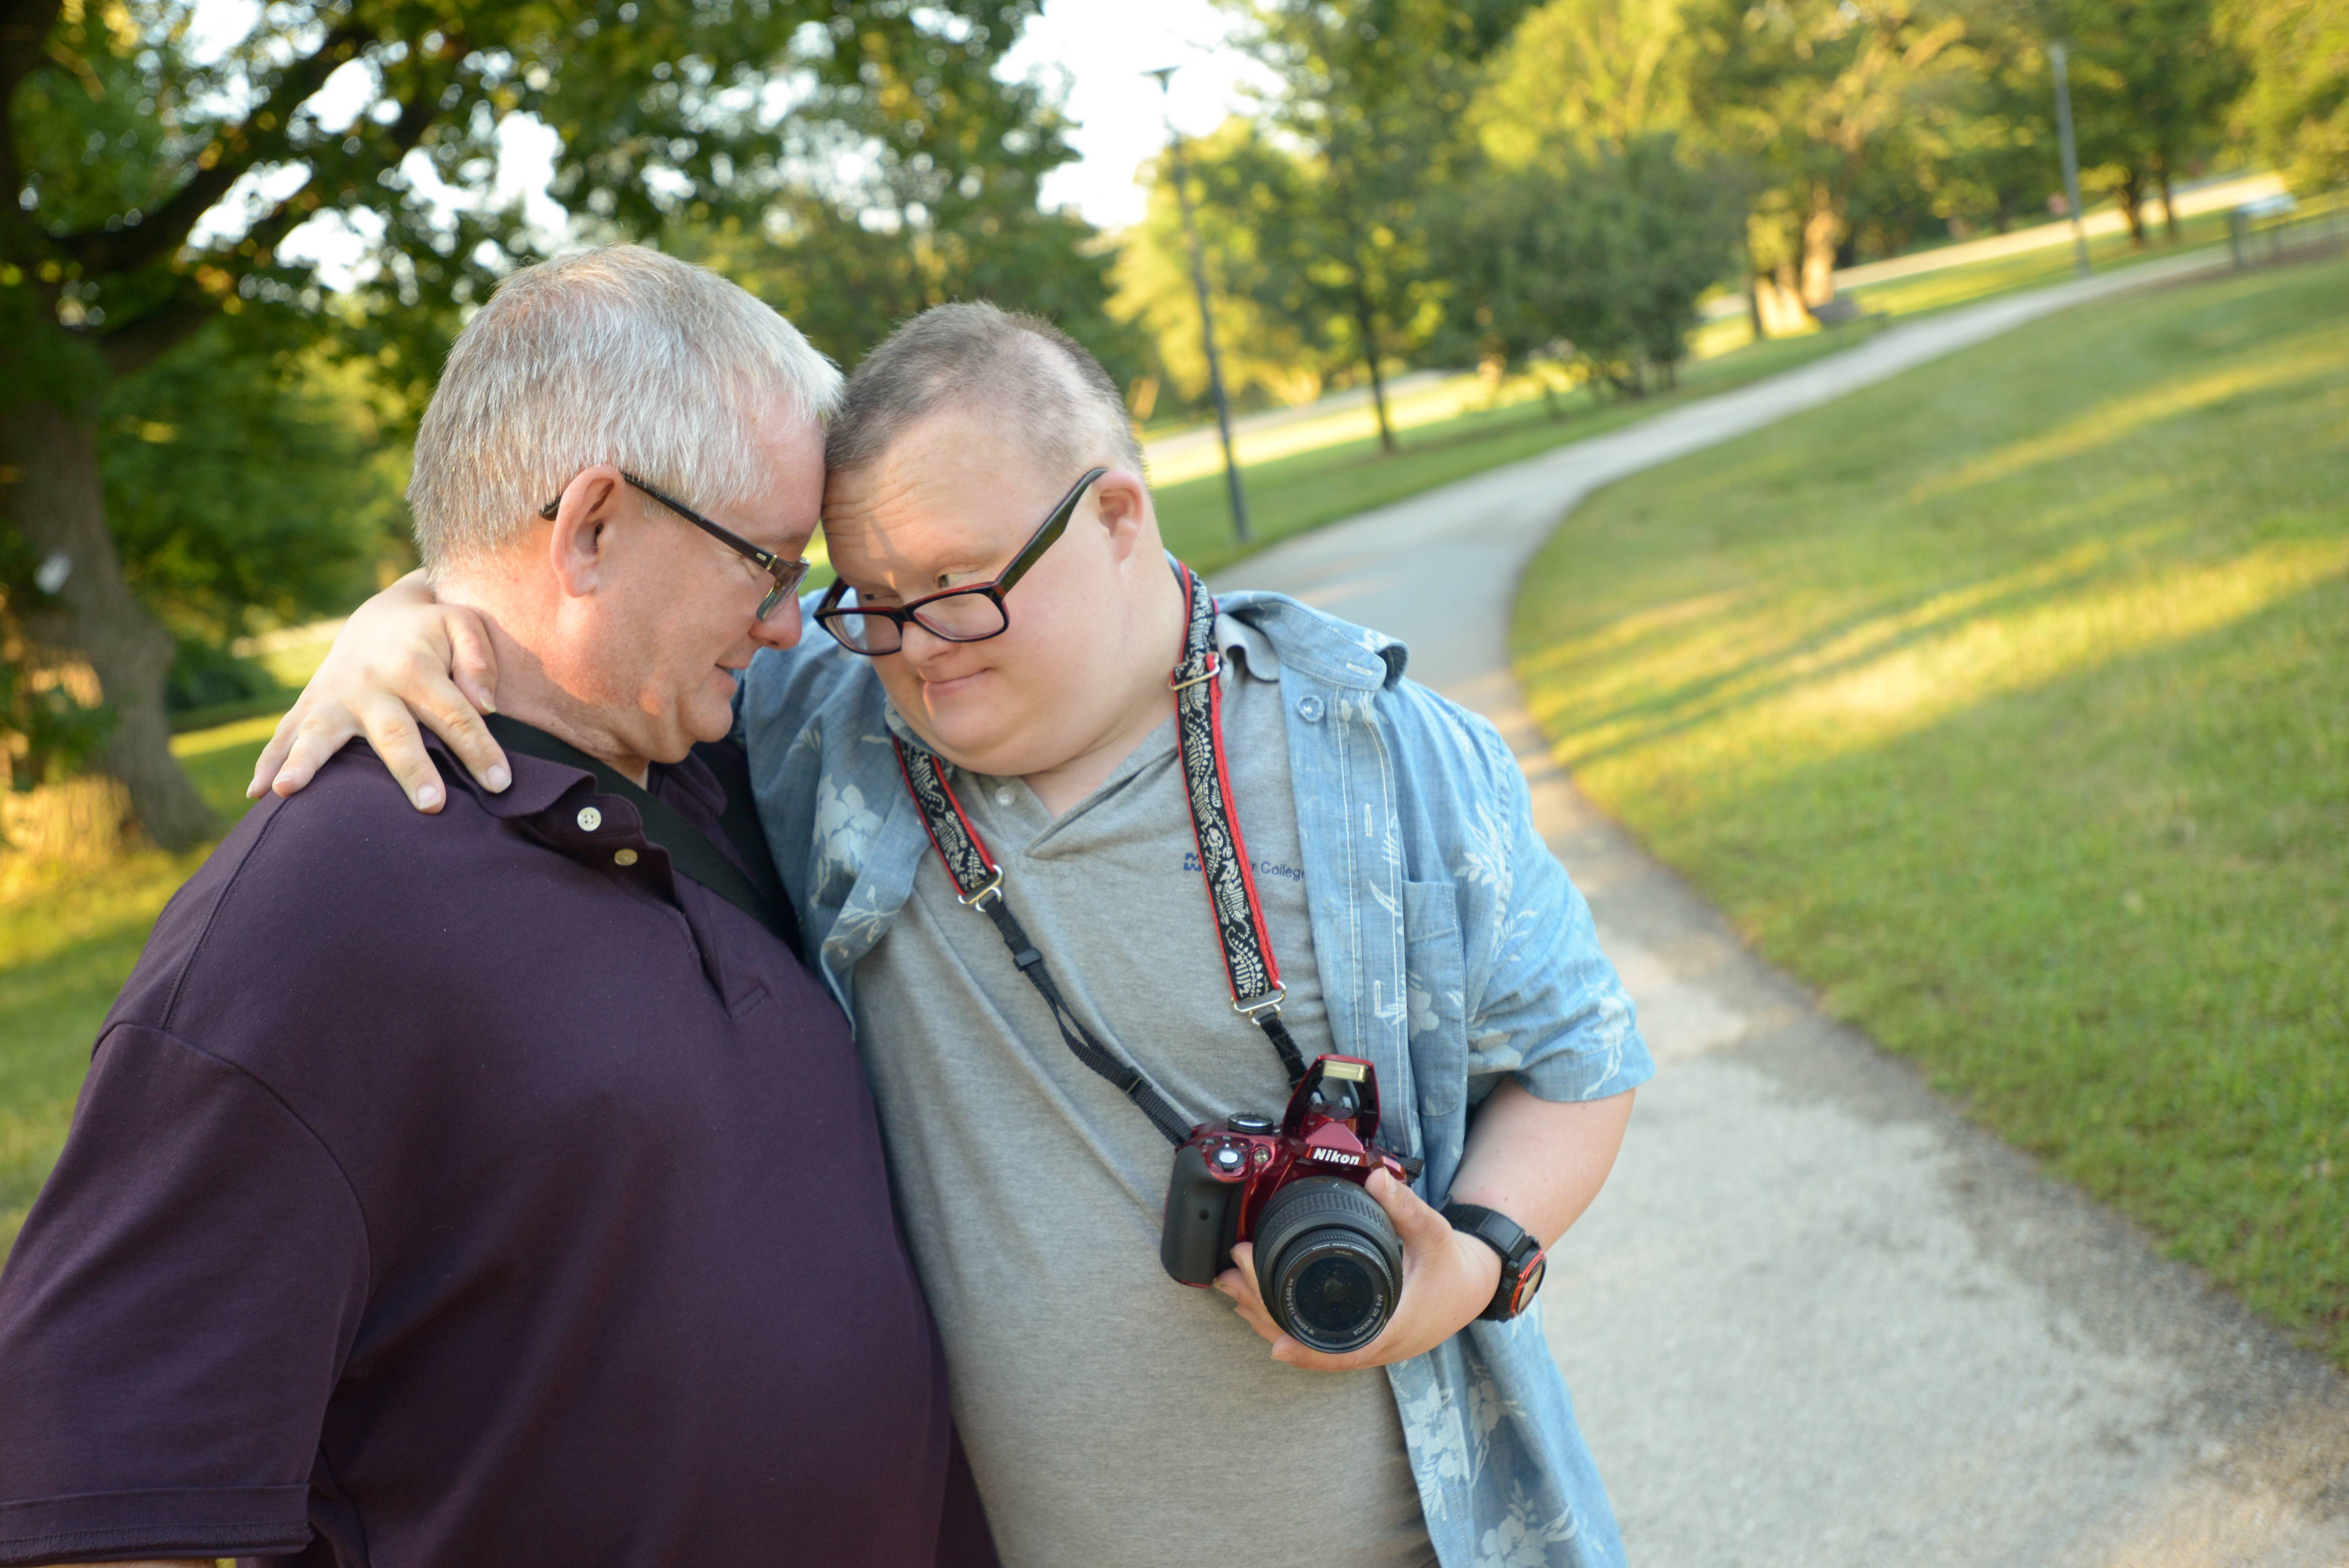 Geoffrey Mikol gives his dad Paul a hug while on a photography outing in the Morton Arboretum.